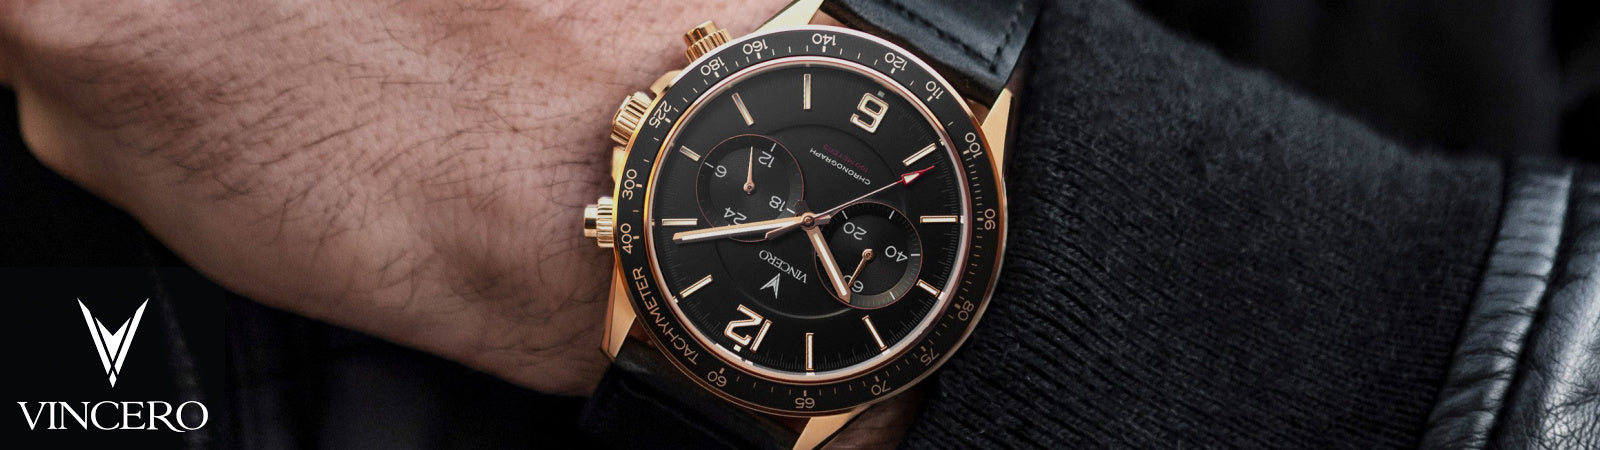 Vincero Watches & Accessories Available at Sportique.com